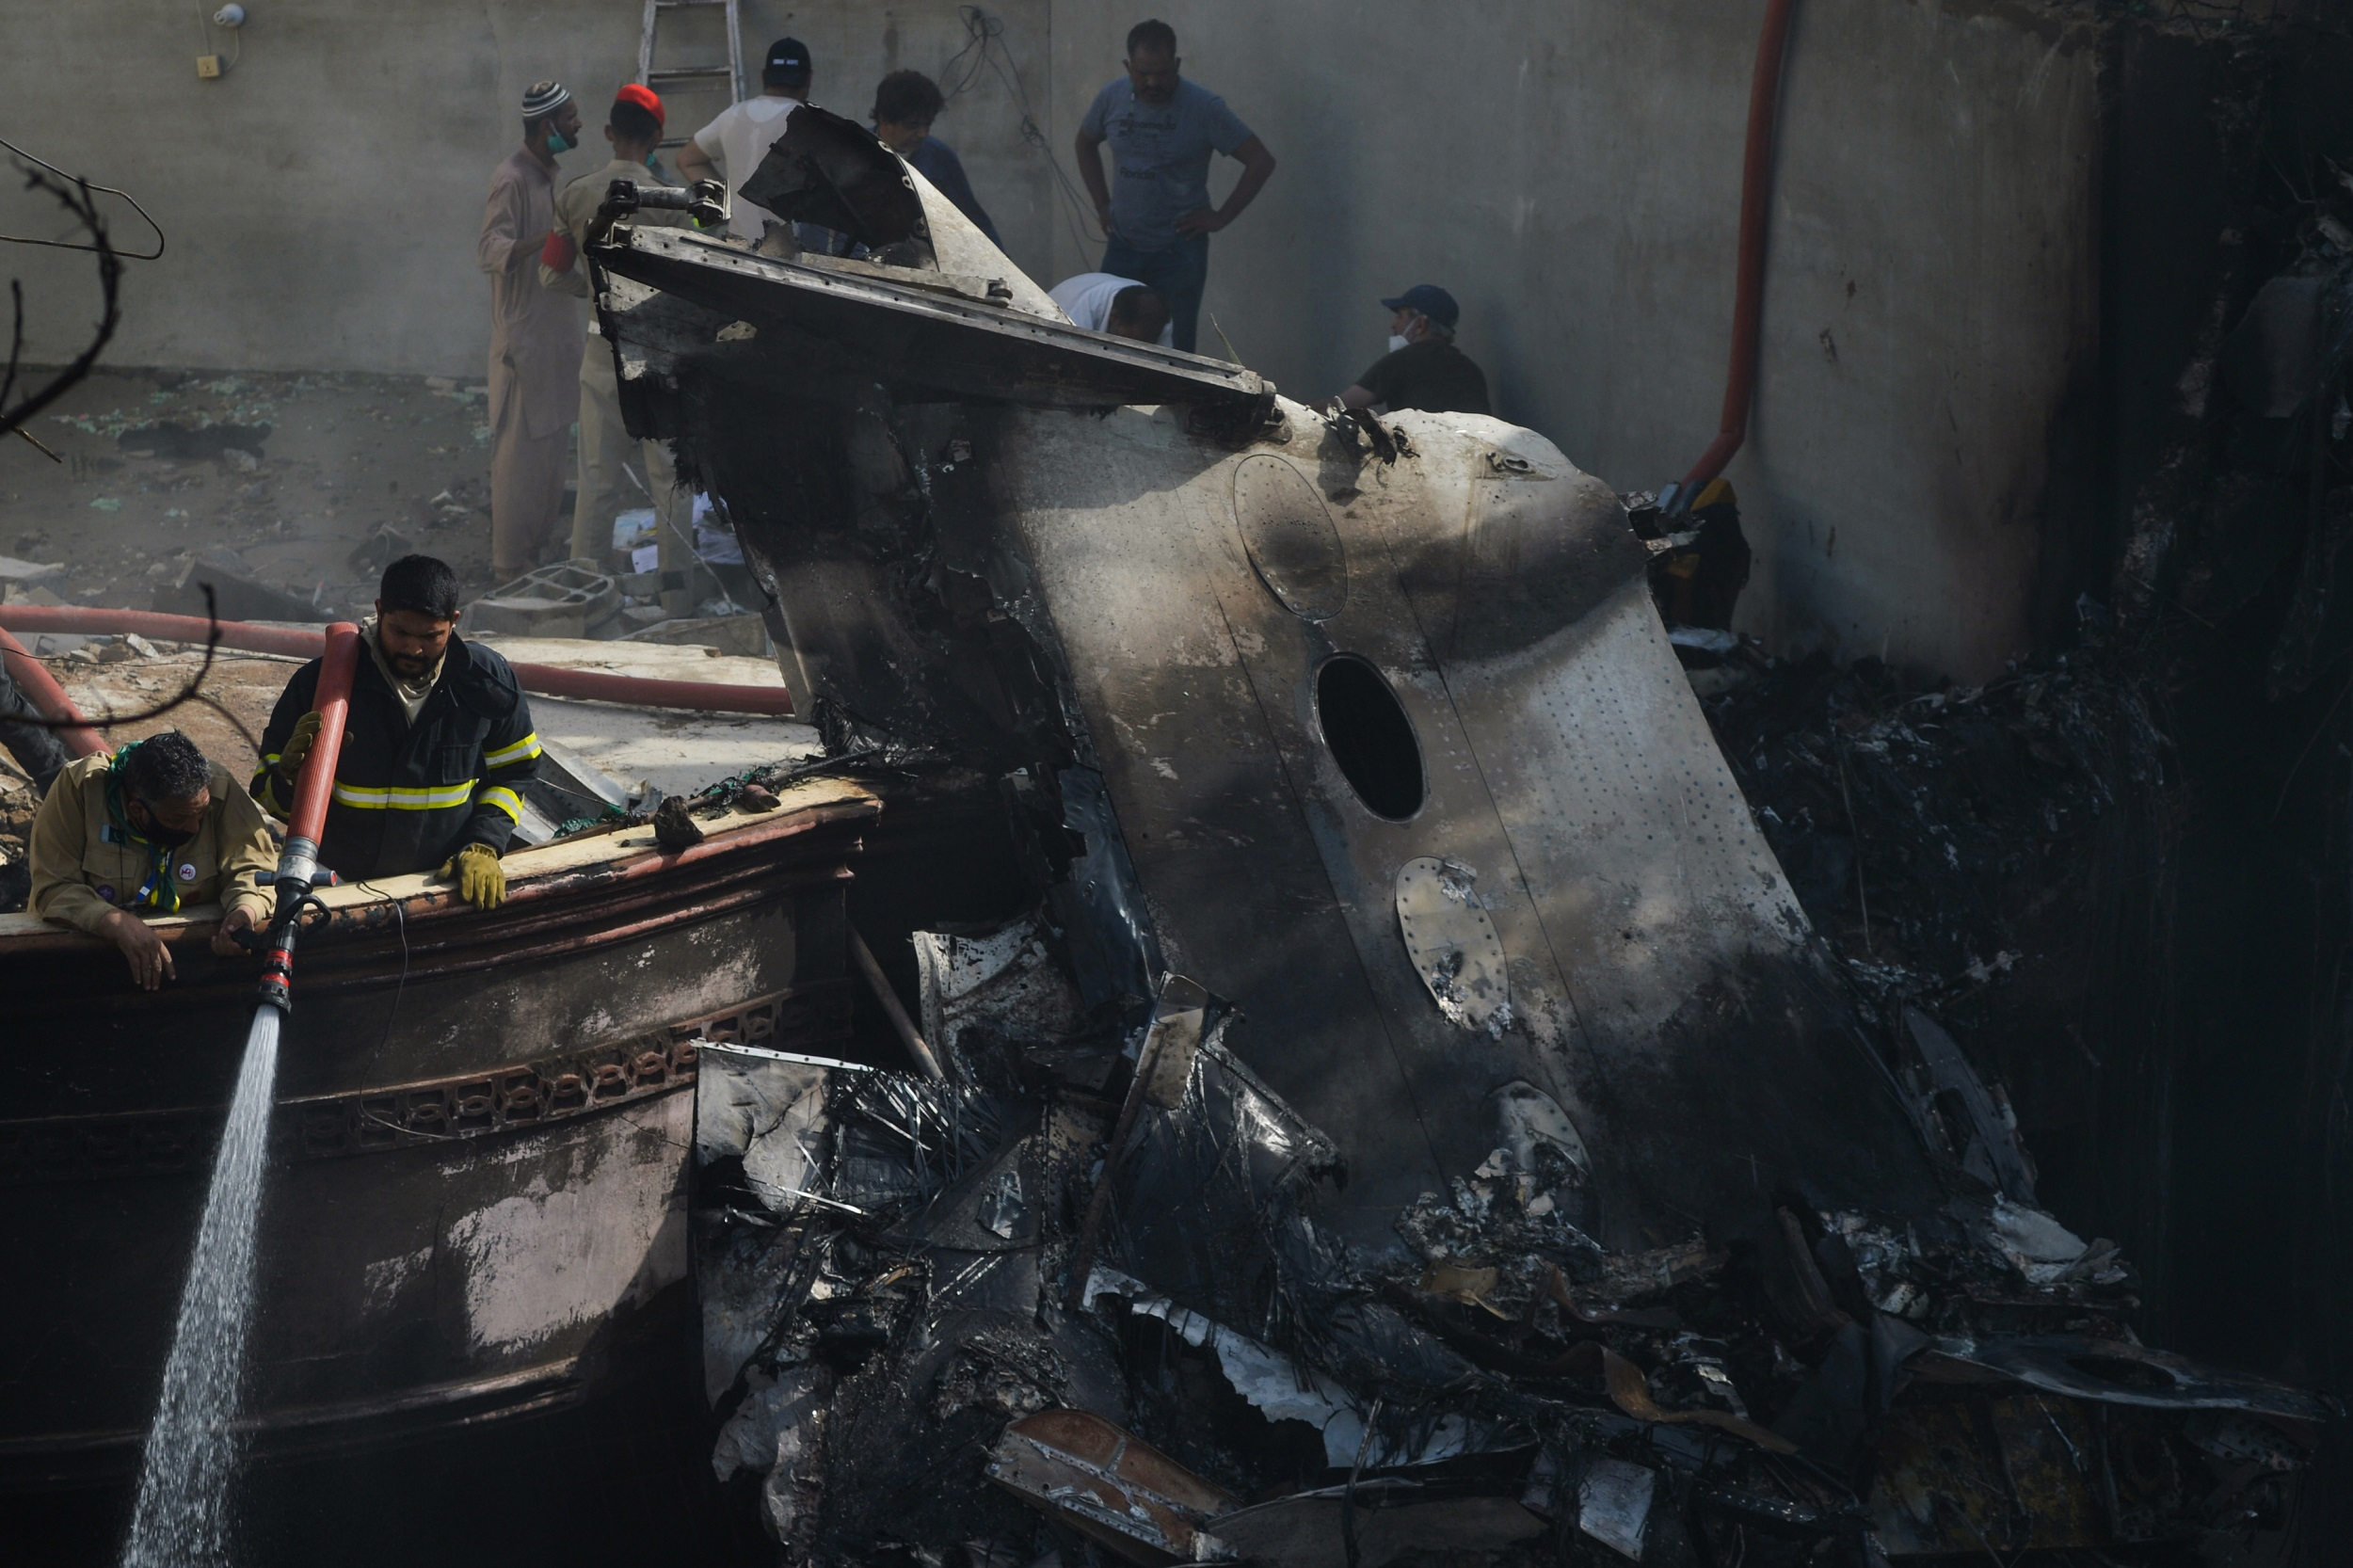 A firefighter sprays water on the wreckage of a Pakistan International Airlines aircraft after it crashed in a residential area in Karachi on Friday.